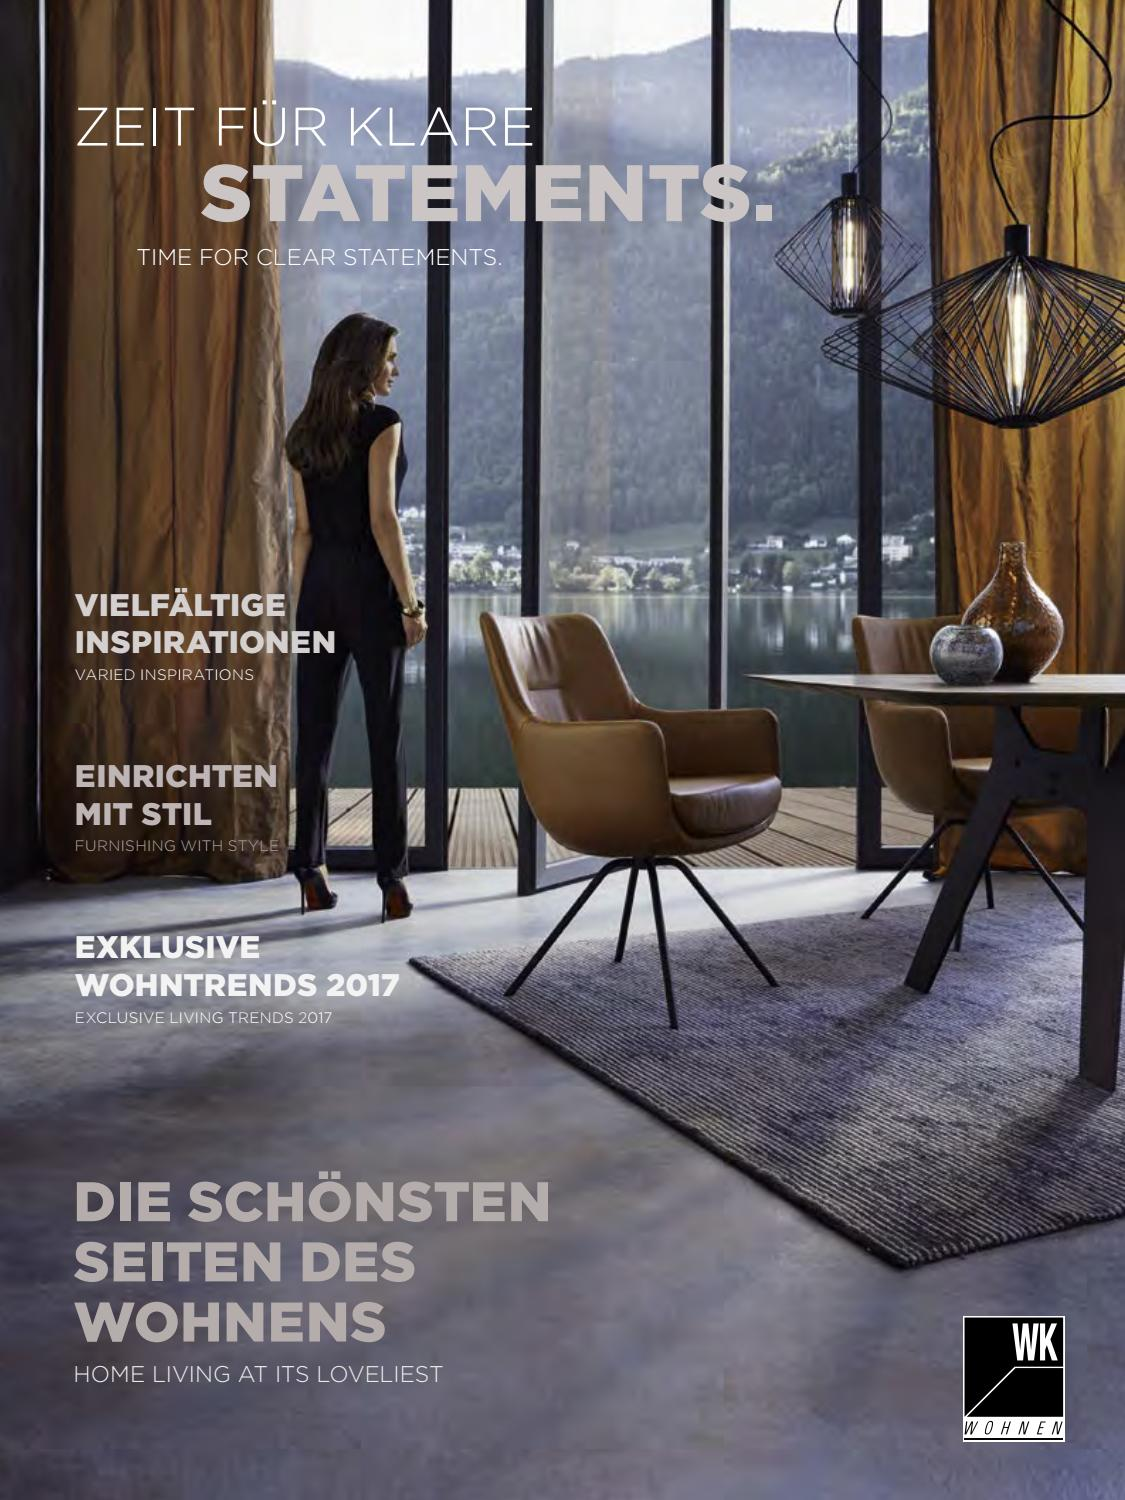 Wk 680 Tipo Sessel Wk Wohnen Journal 2017 By Perspektive Werbeagentur Issuu